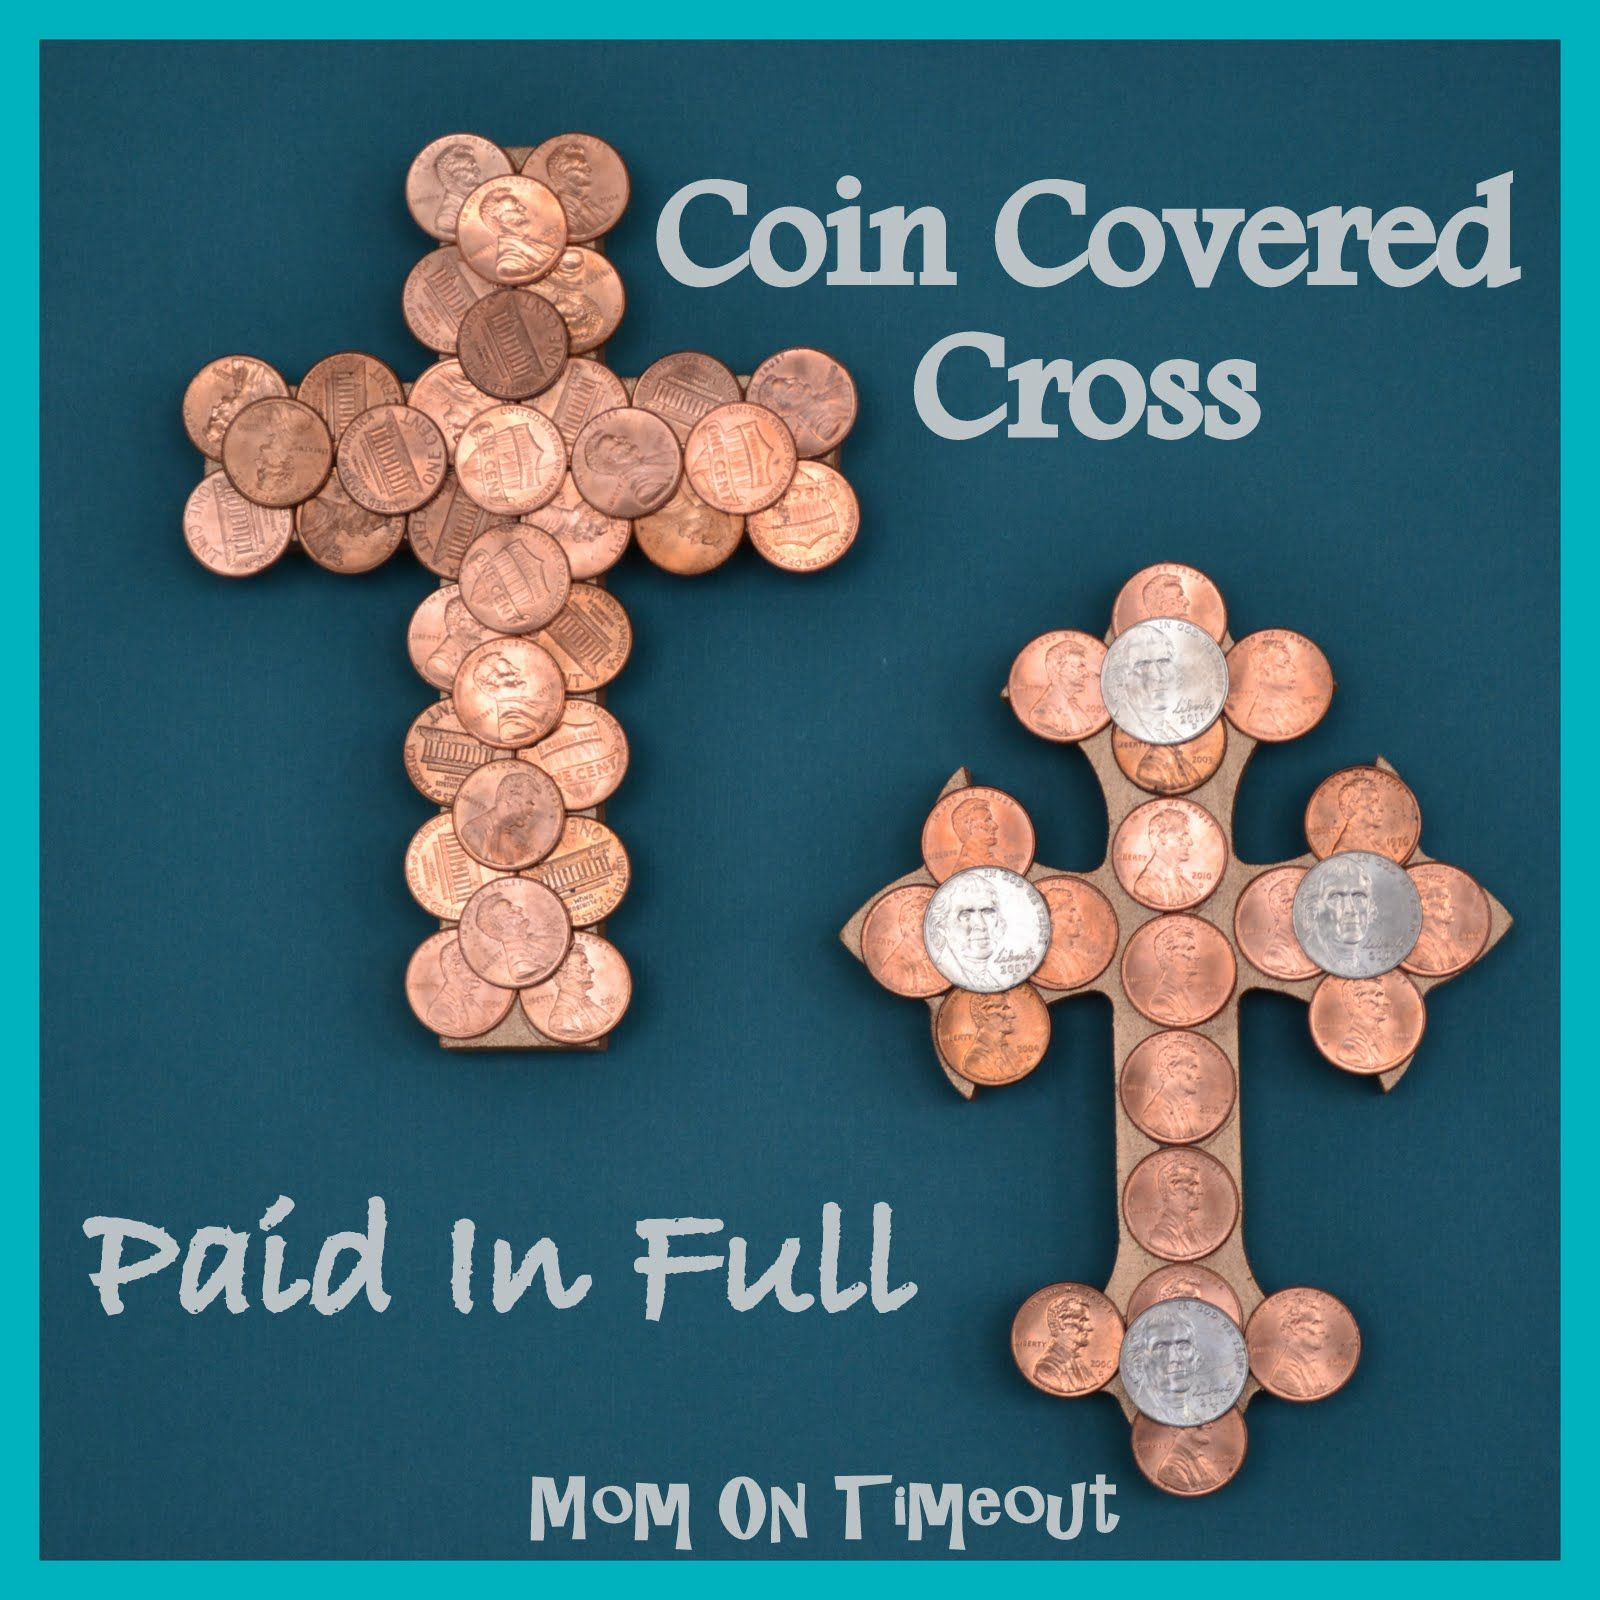 Coin Covered Cross